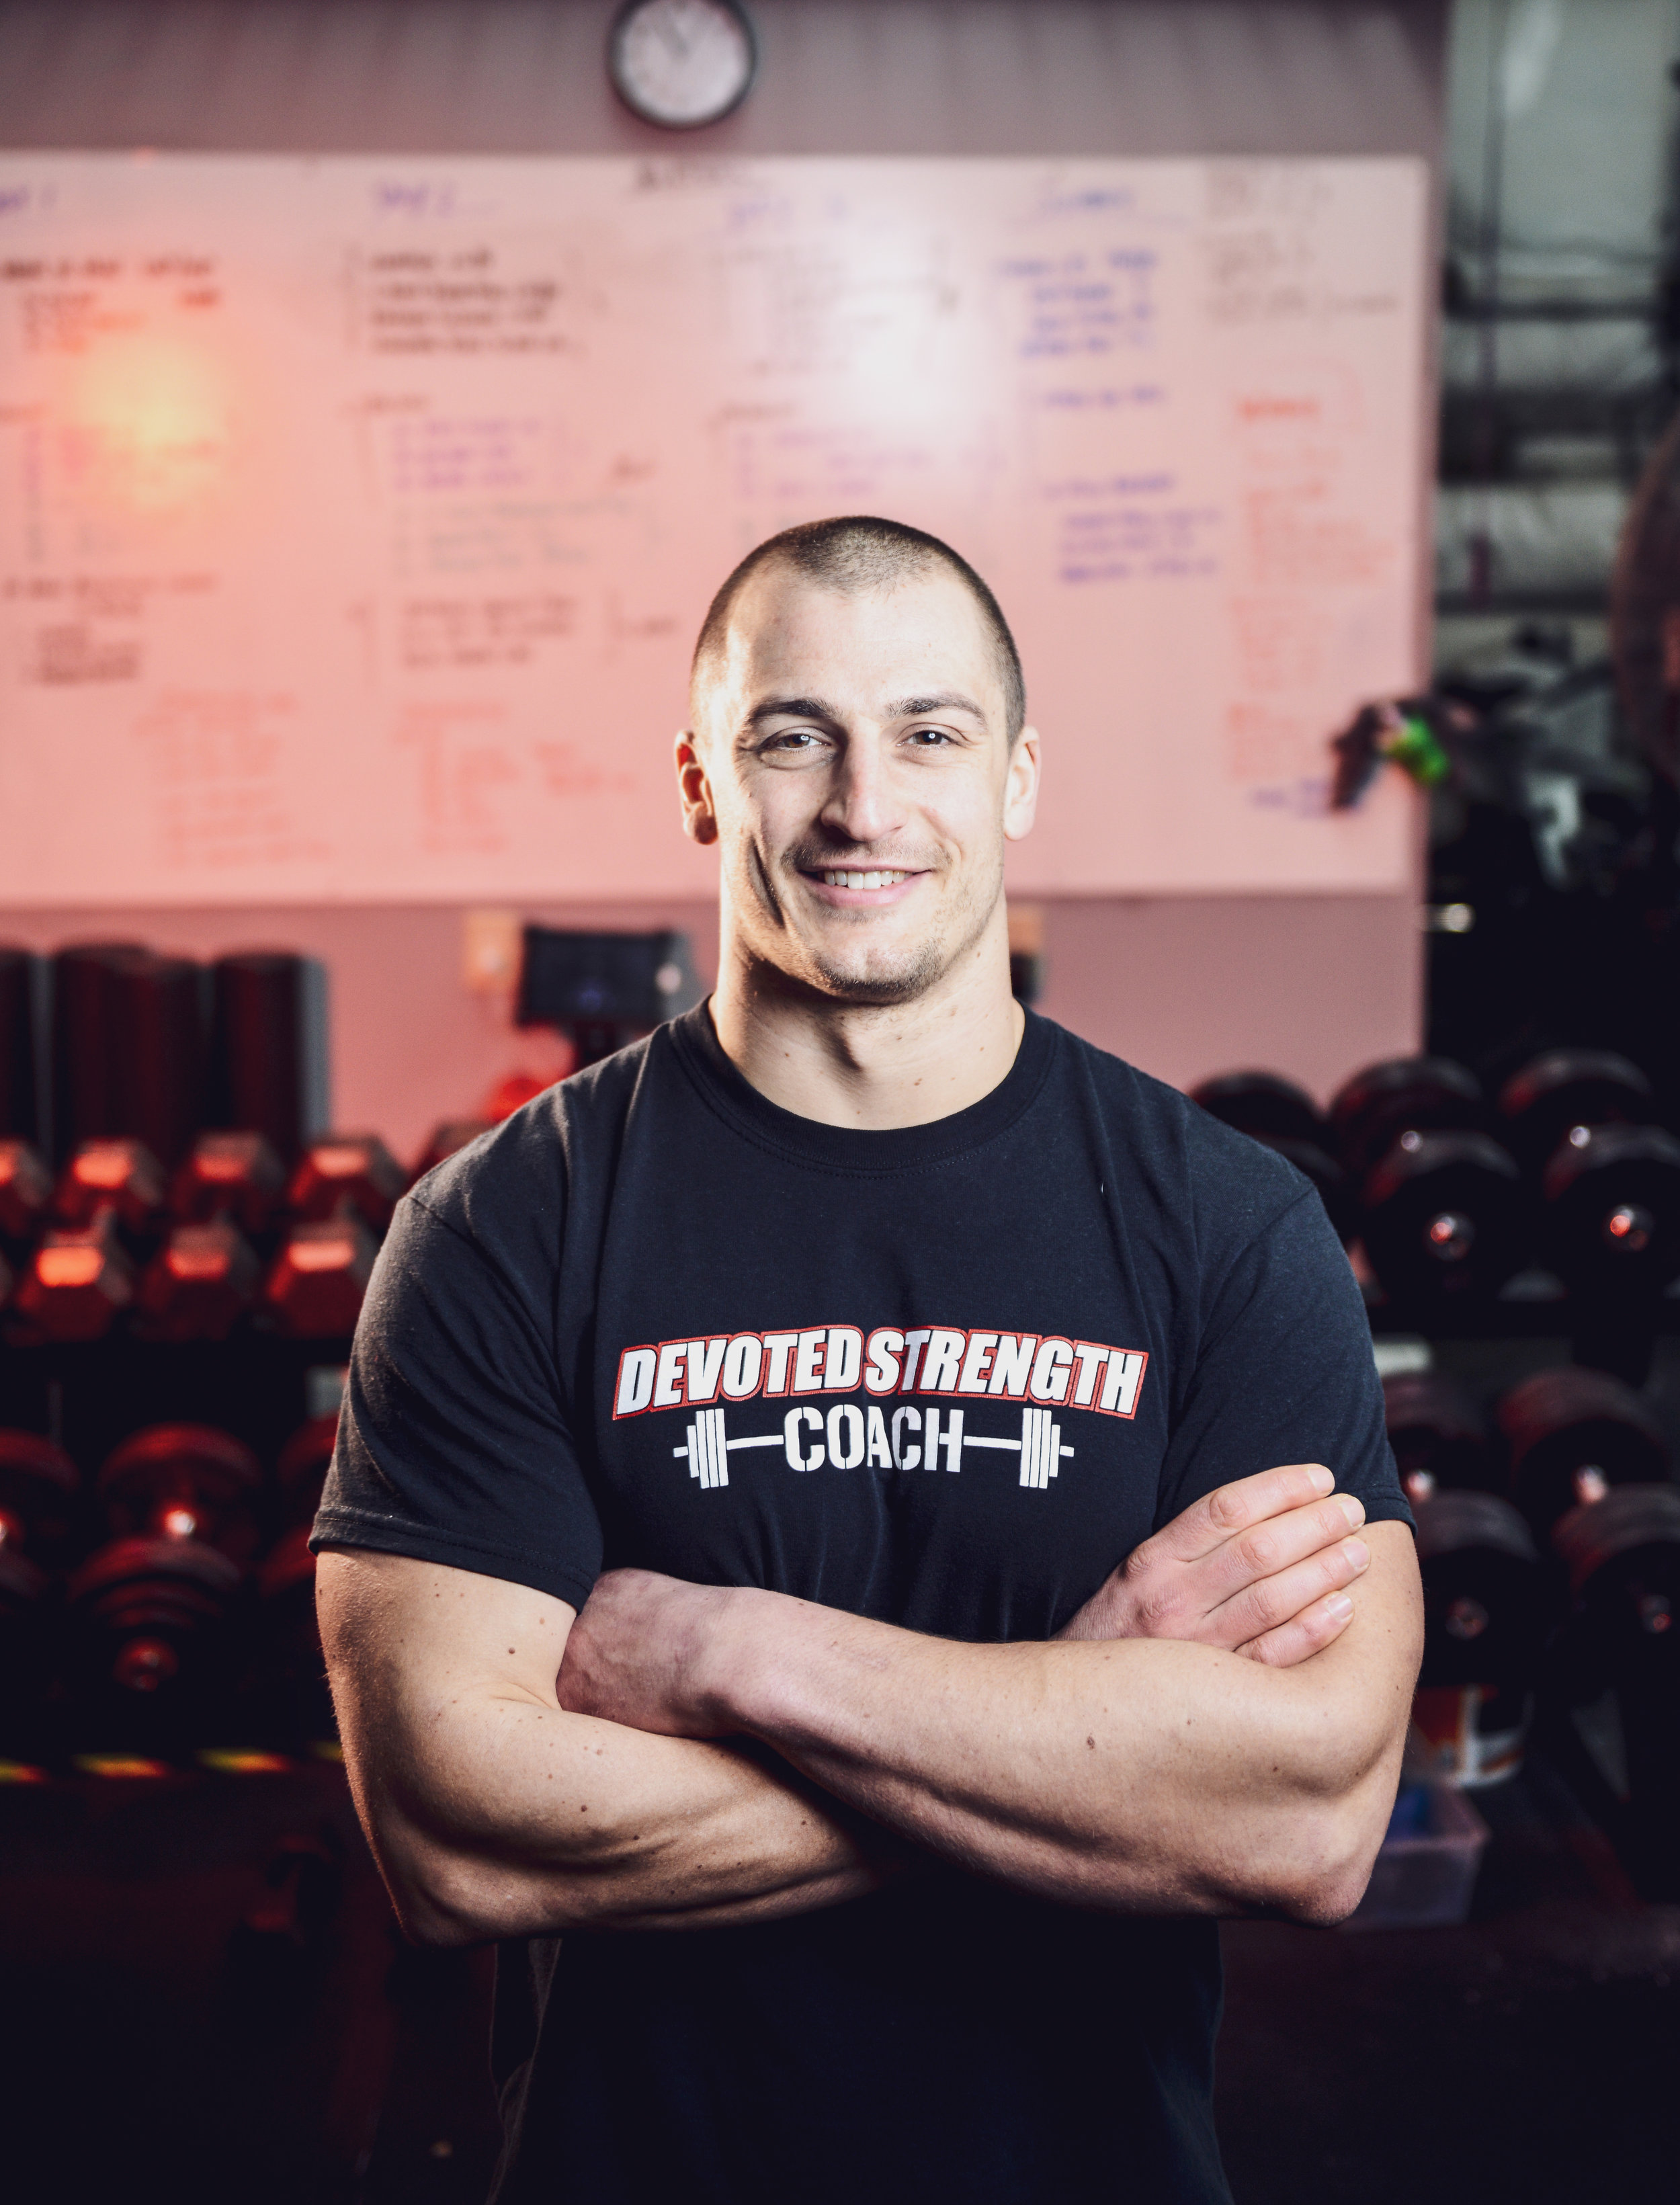 NICK HAUGHT  - Strength   Coach Owner, Lean&Fit, Strength&Muscle, Nutrition